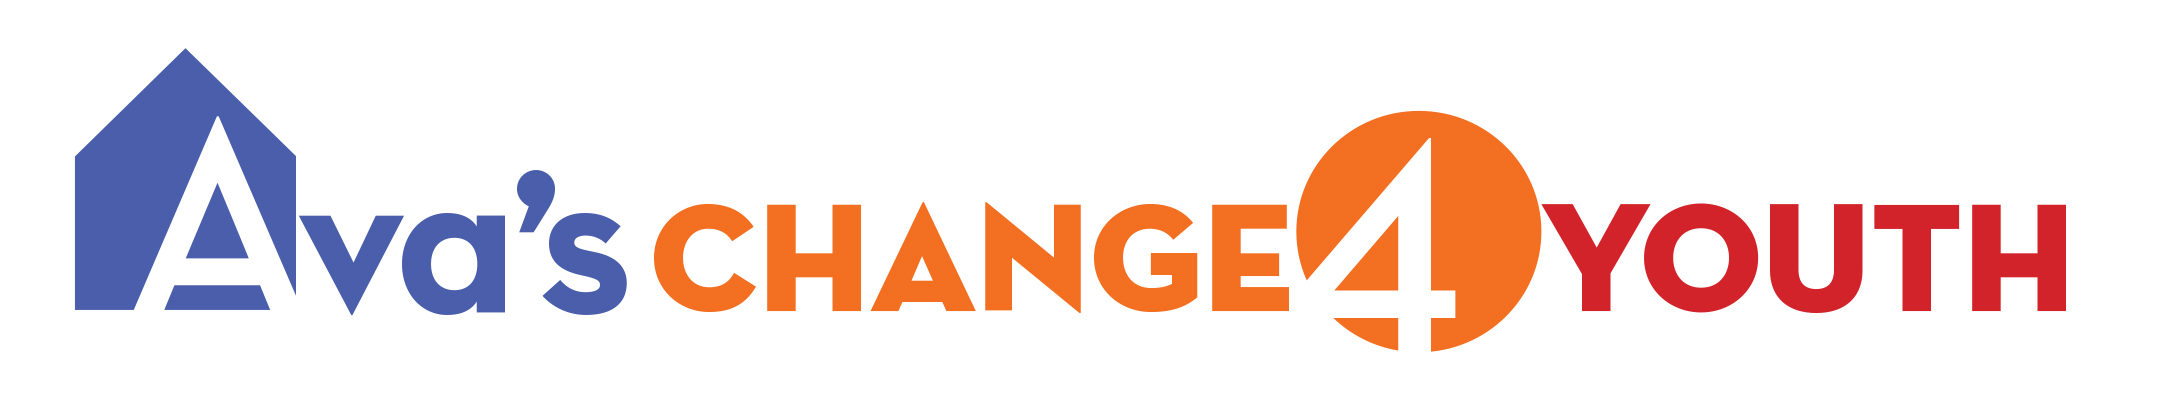 Ava's Change4Youth Logo